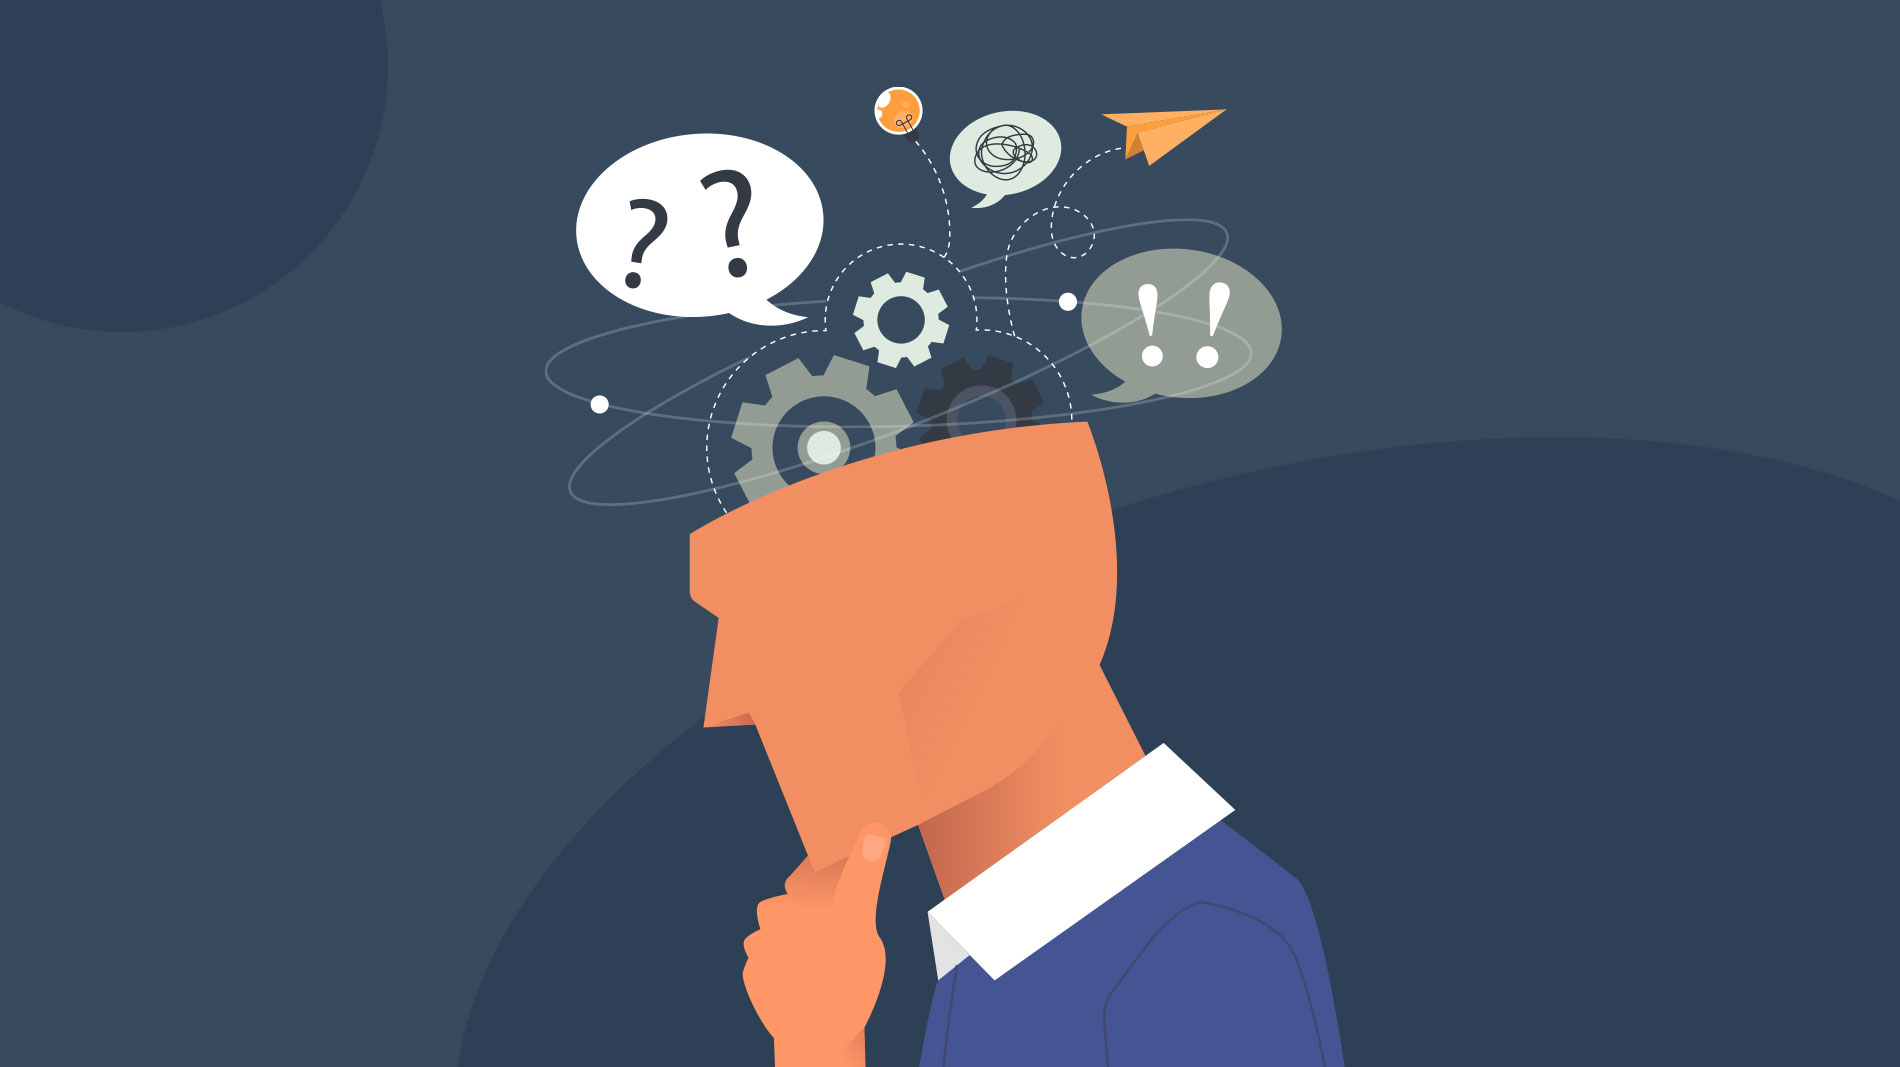 How-Psychometric-Tests-are-Useful-for-Career-Counsellors-in-Guiding-Students